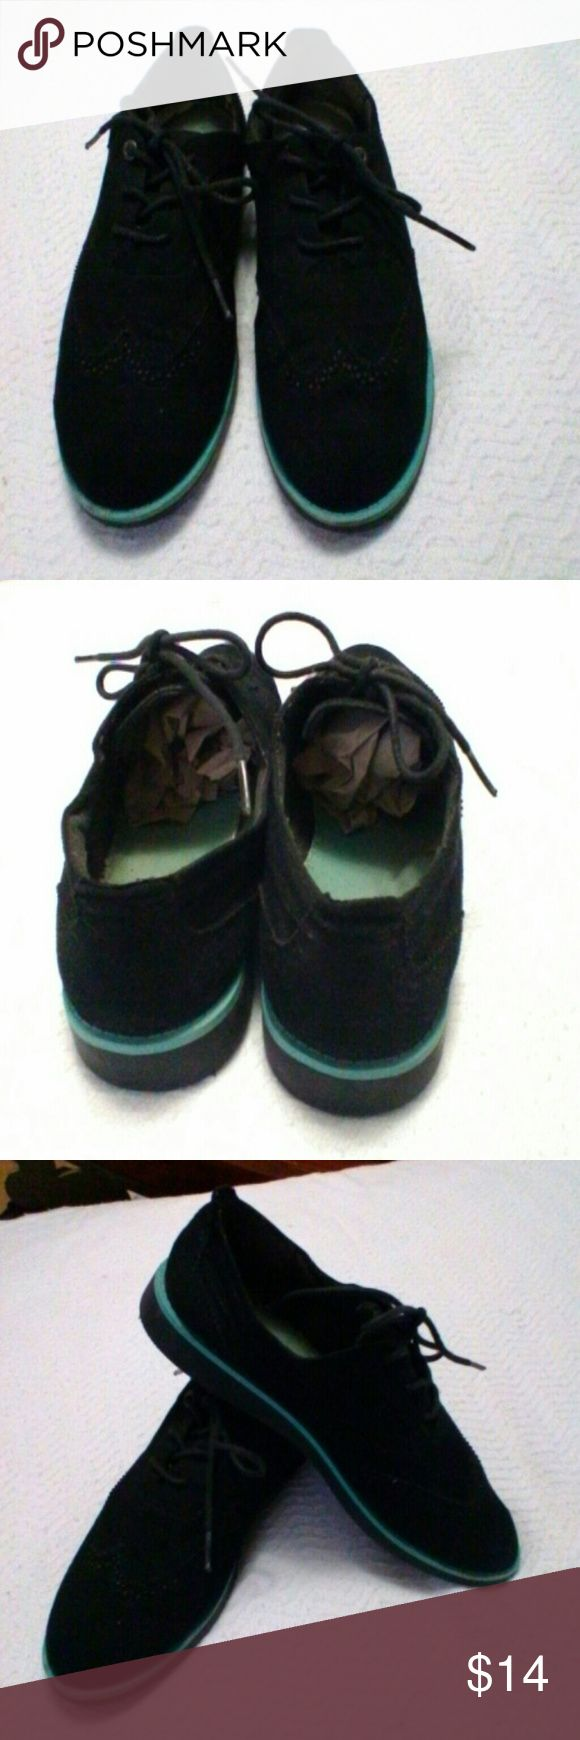 Suede oxford shoe Black suede oxford/loafer with turquoise at sole, gently used, good condition. Cute with jeans or skirt. Nautica Shoes Flats & Loafers #loafersoxford